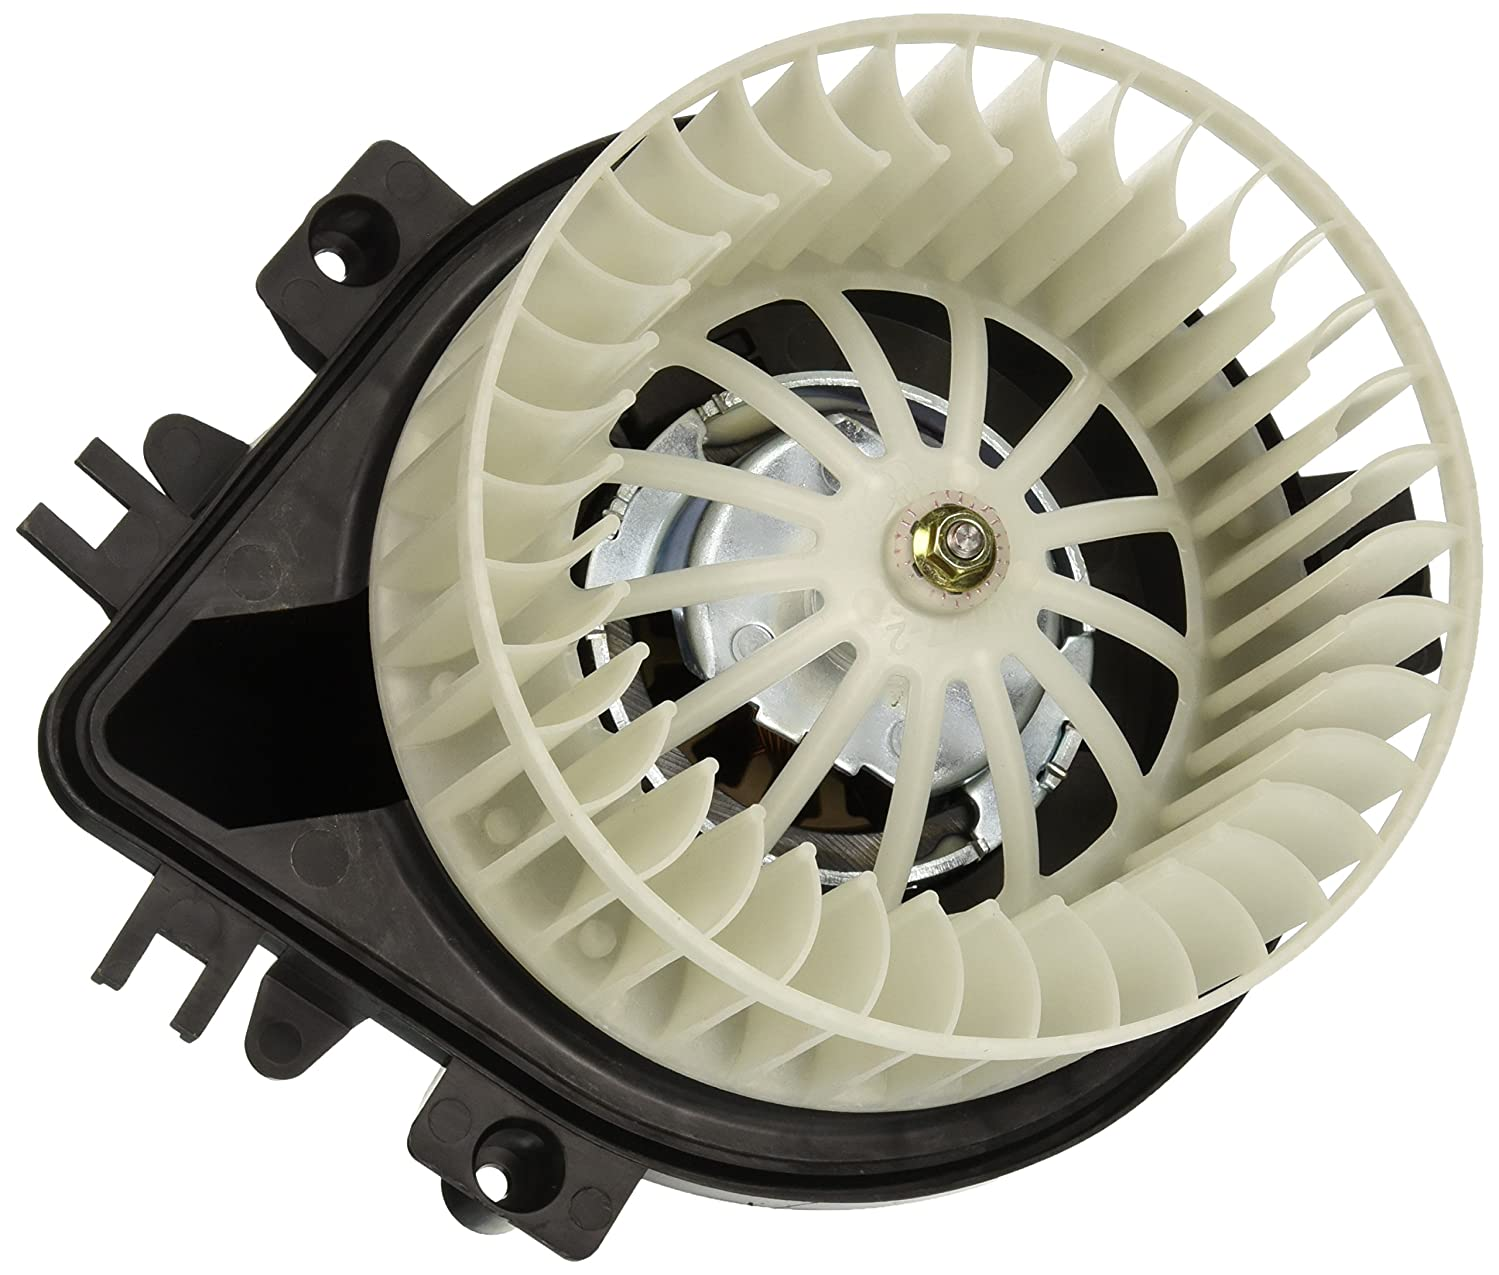 TYC 700271 Replacement Blower Assembly